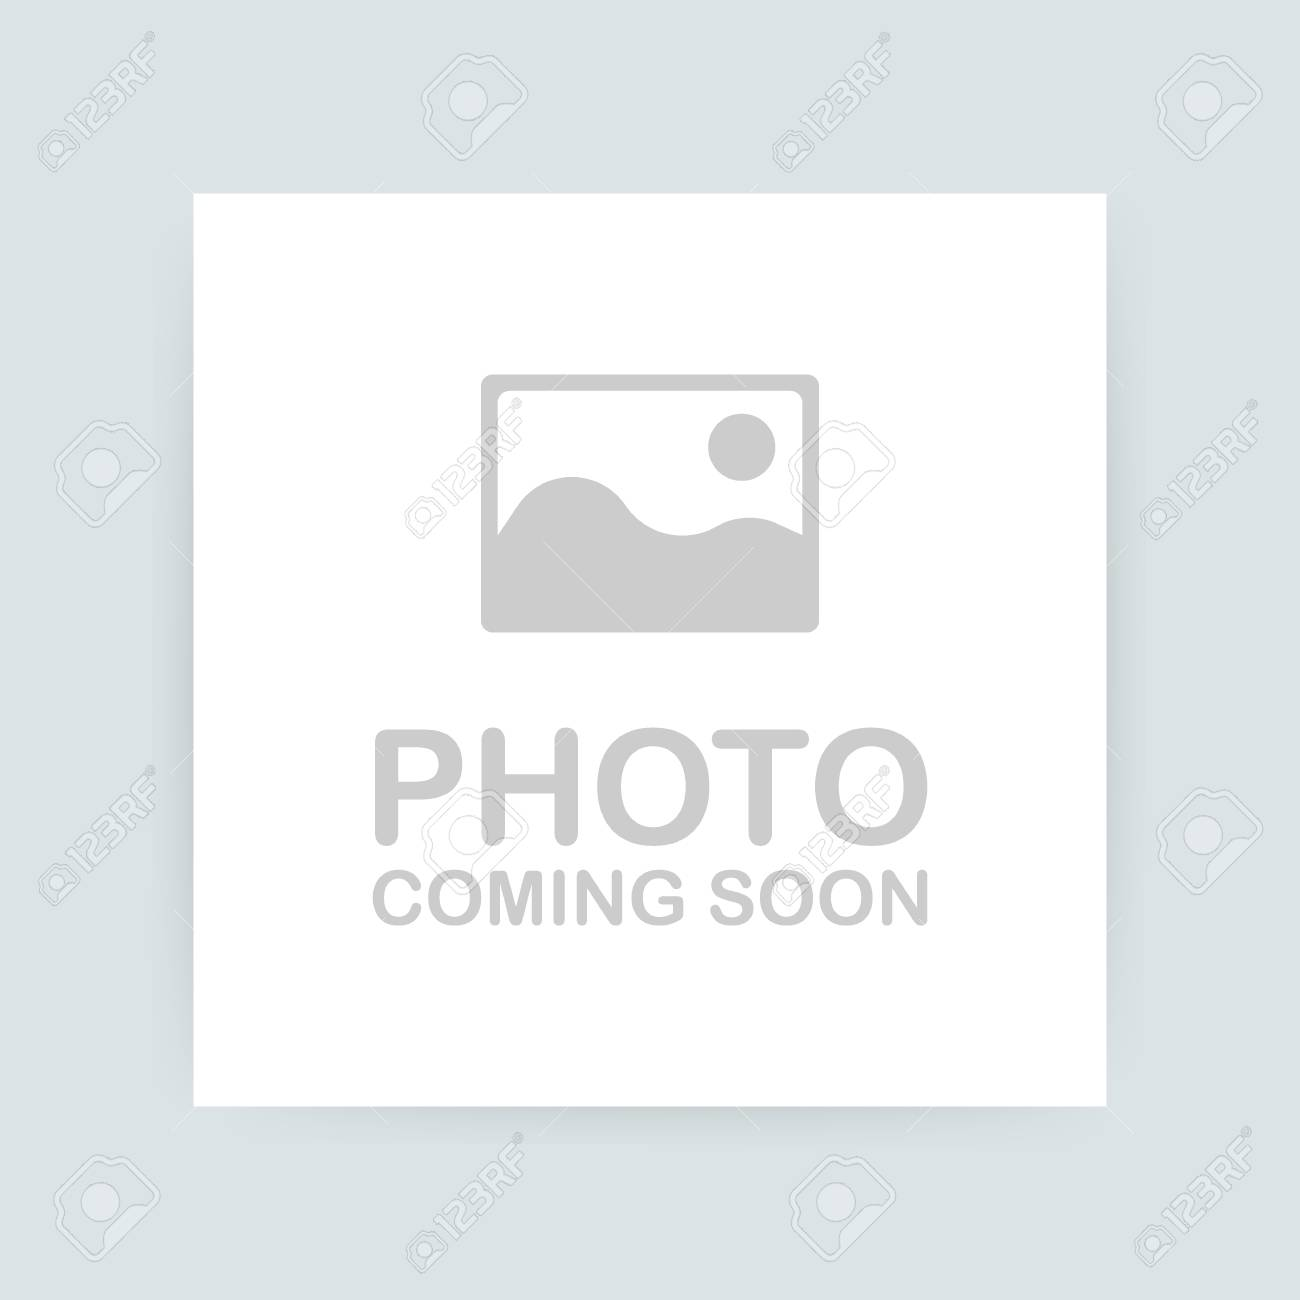 Photo coming soon. Picture frame. Vector stock illustration - 114951861